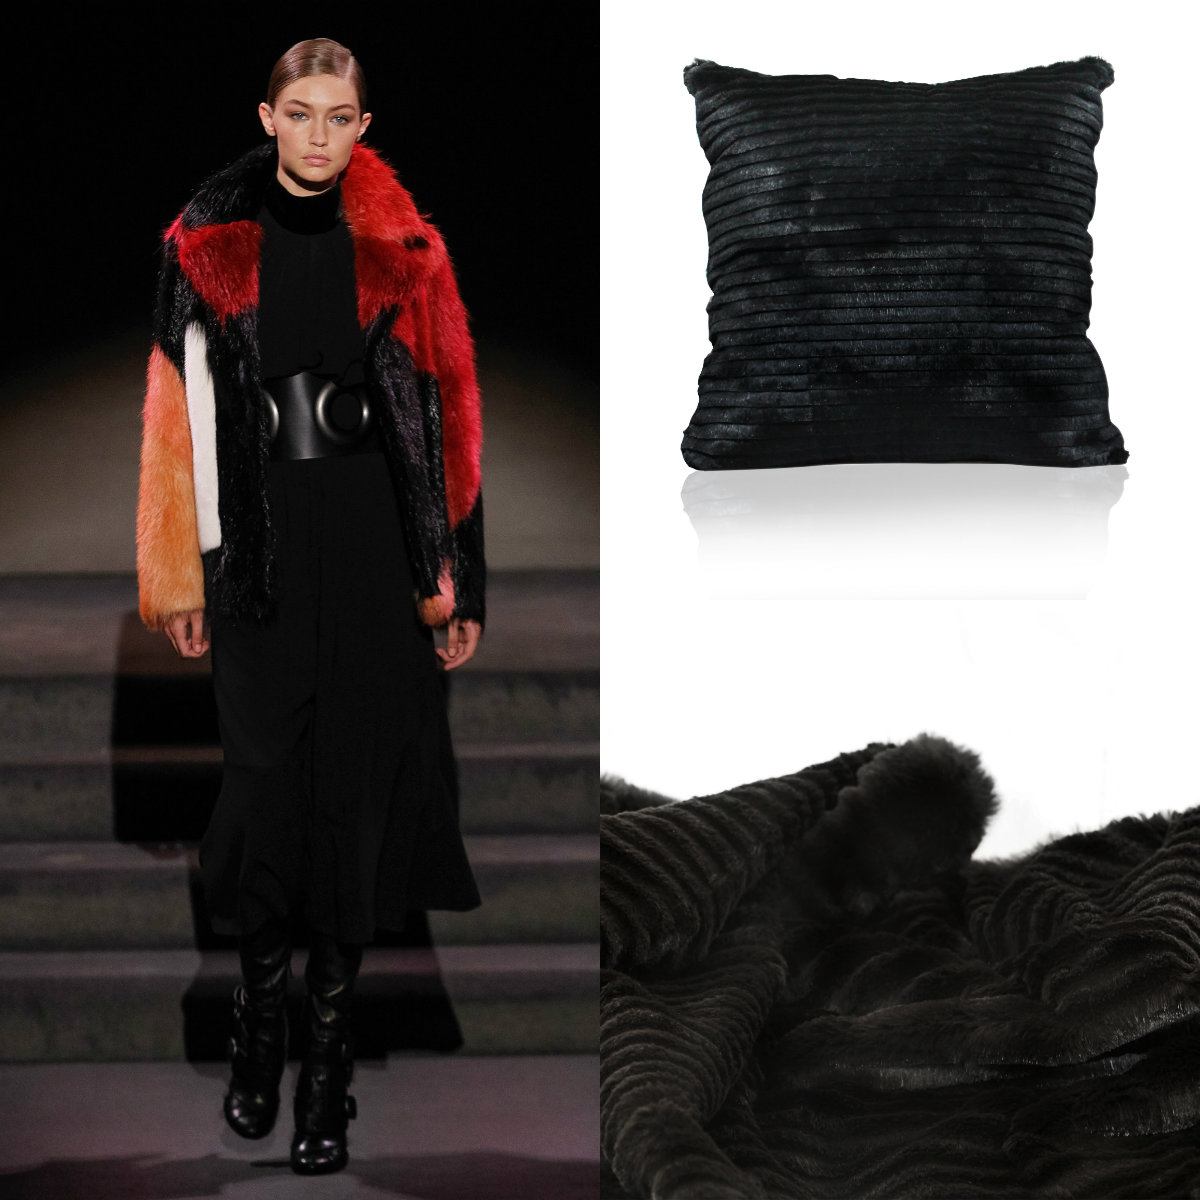 Gigi Hadid walked the Tom Ford show in a fur coat similar to the supple fur of the KOKET soft goods collection.